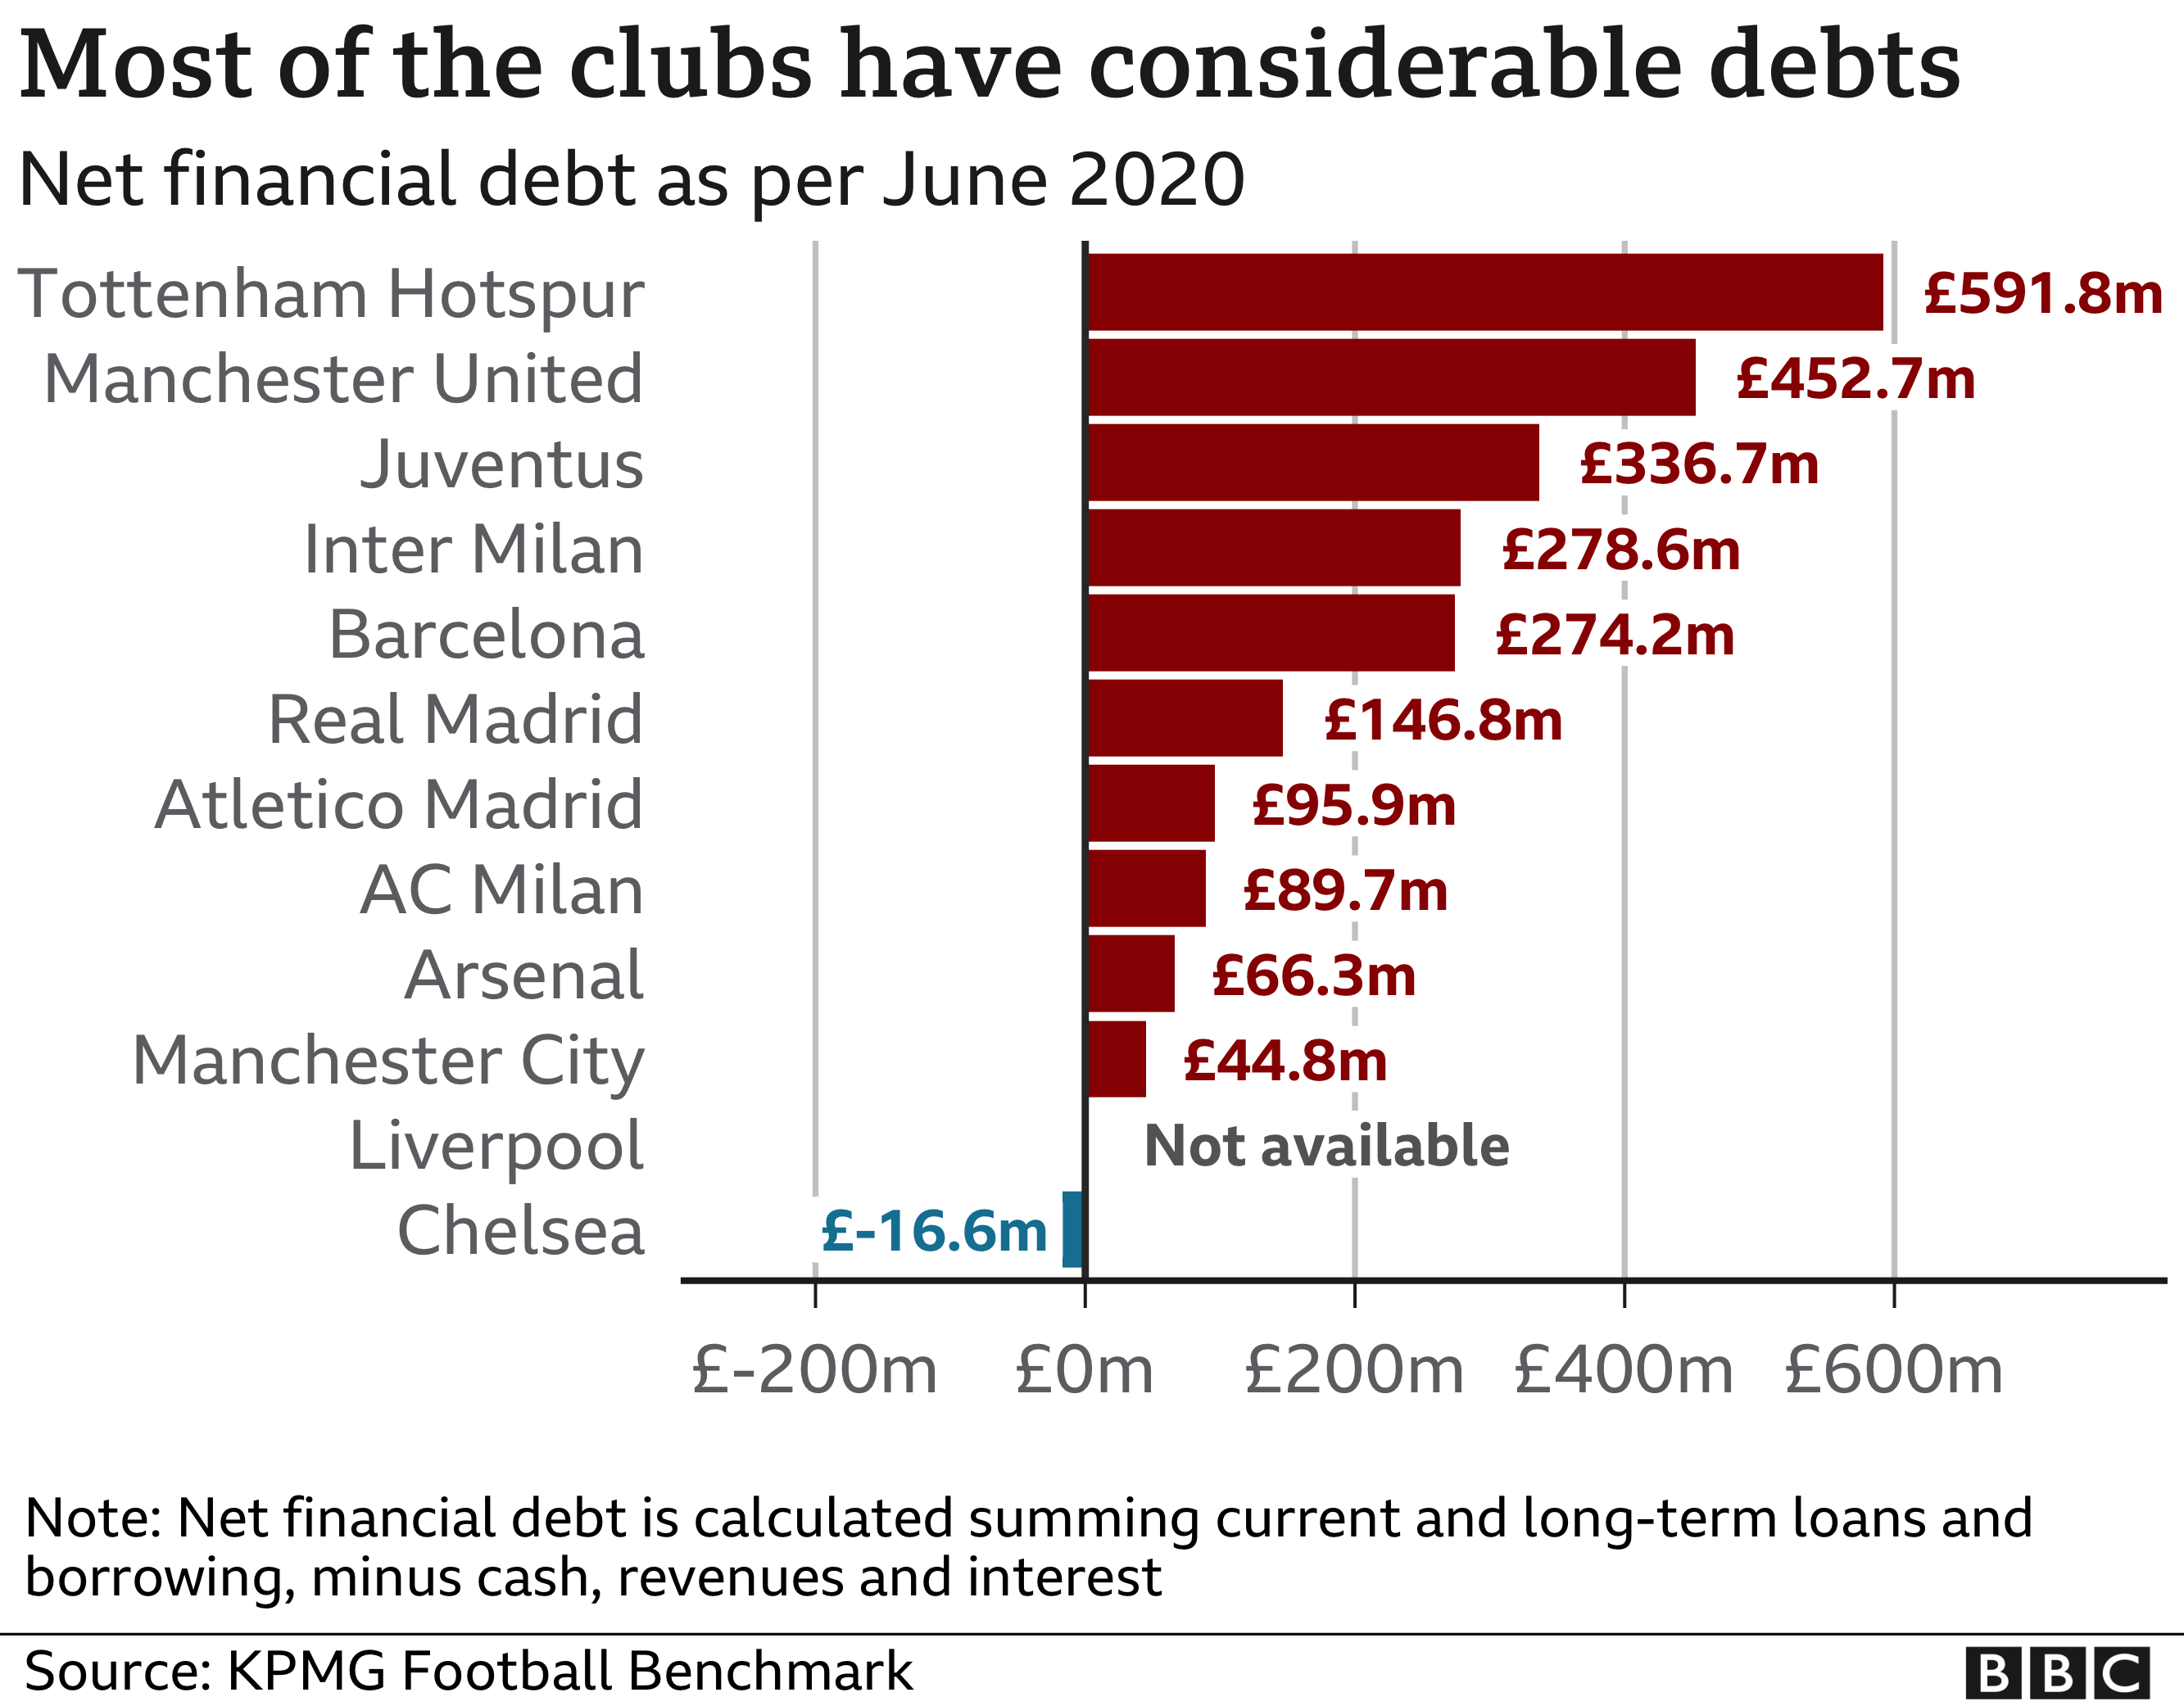 The net financial debts of the top Premier League teams